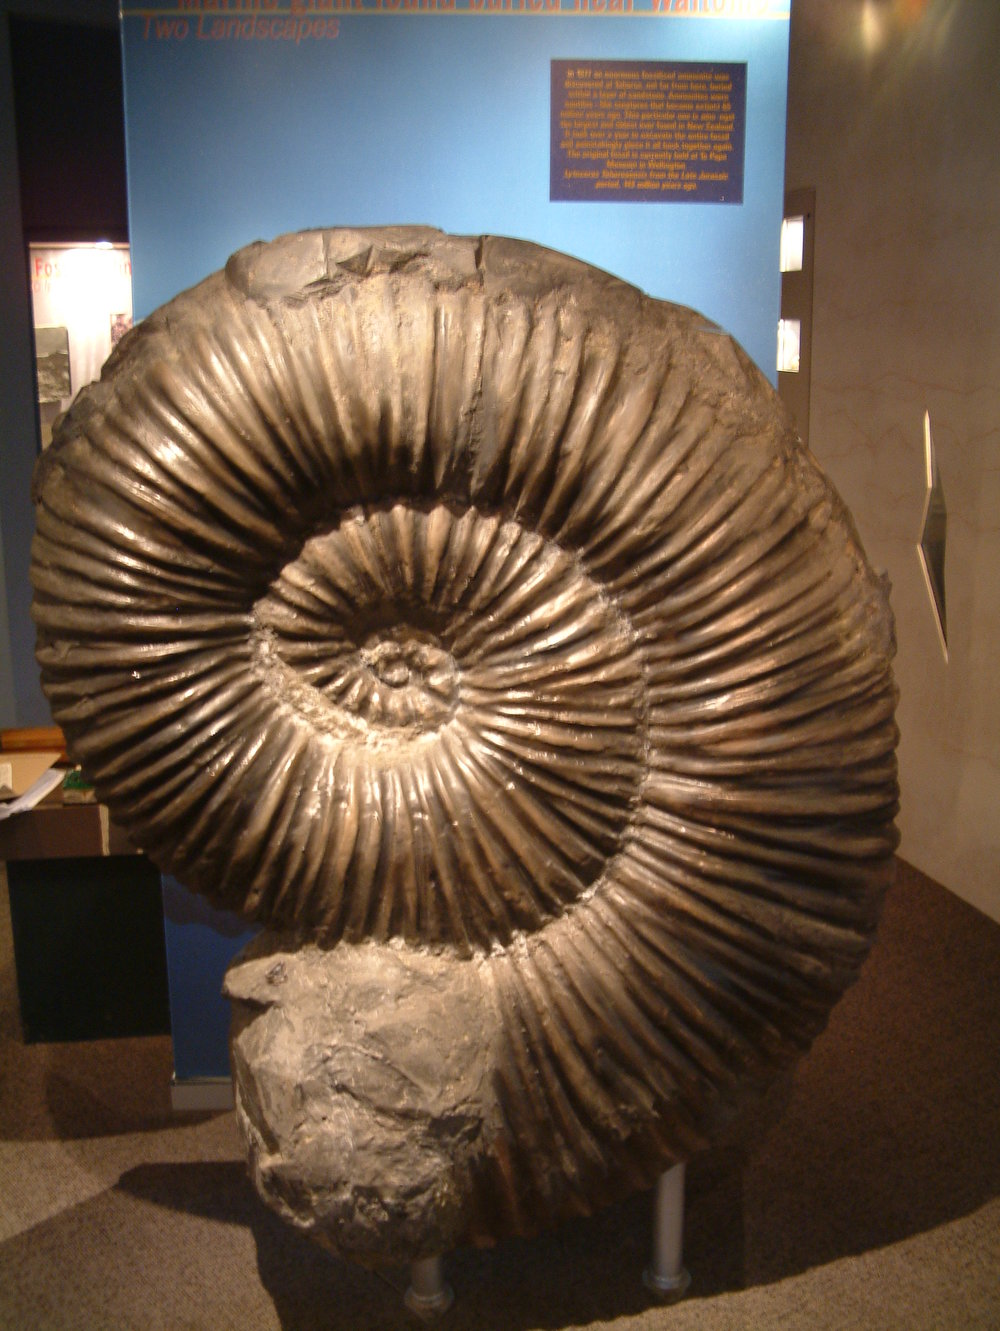 A giant replica of a fossilised ammonite found nearby in Taharoa in 1977